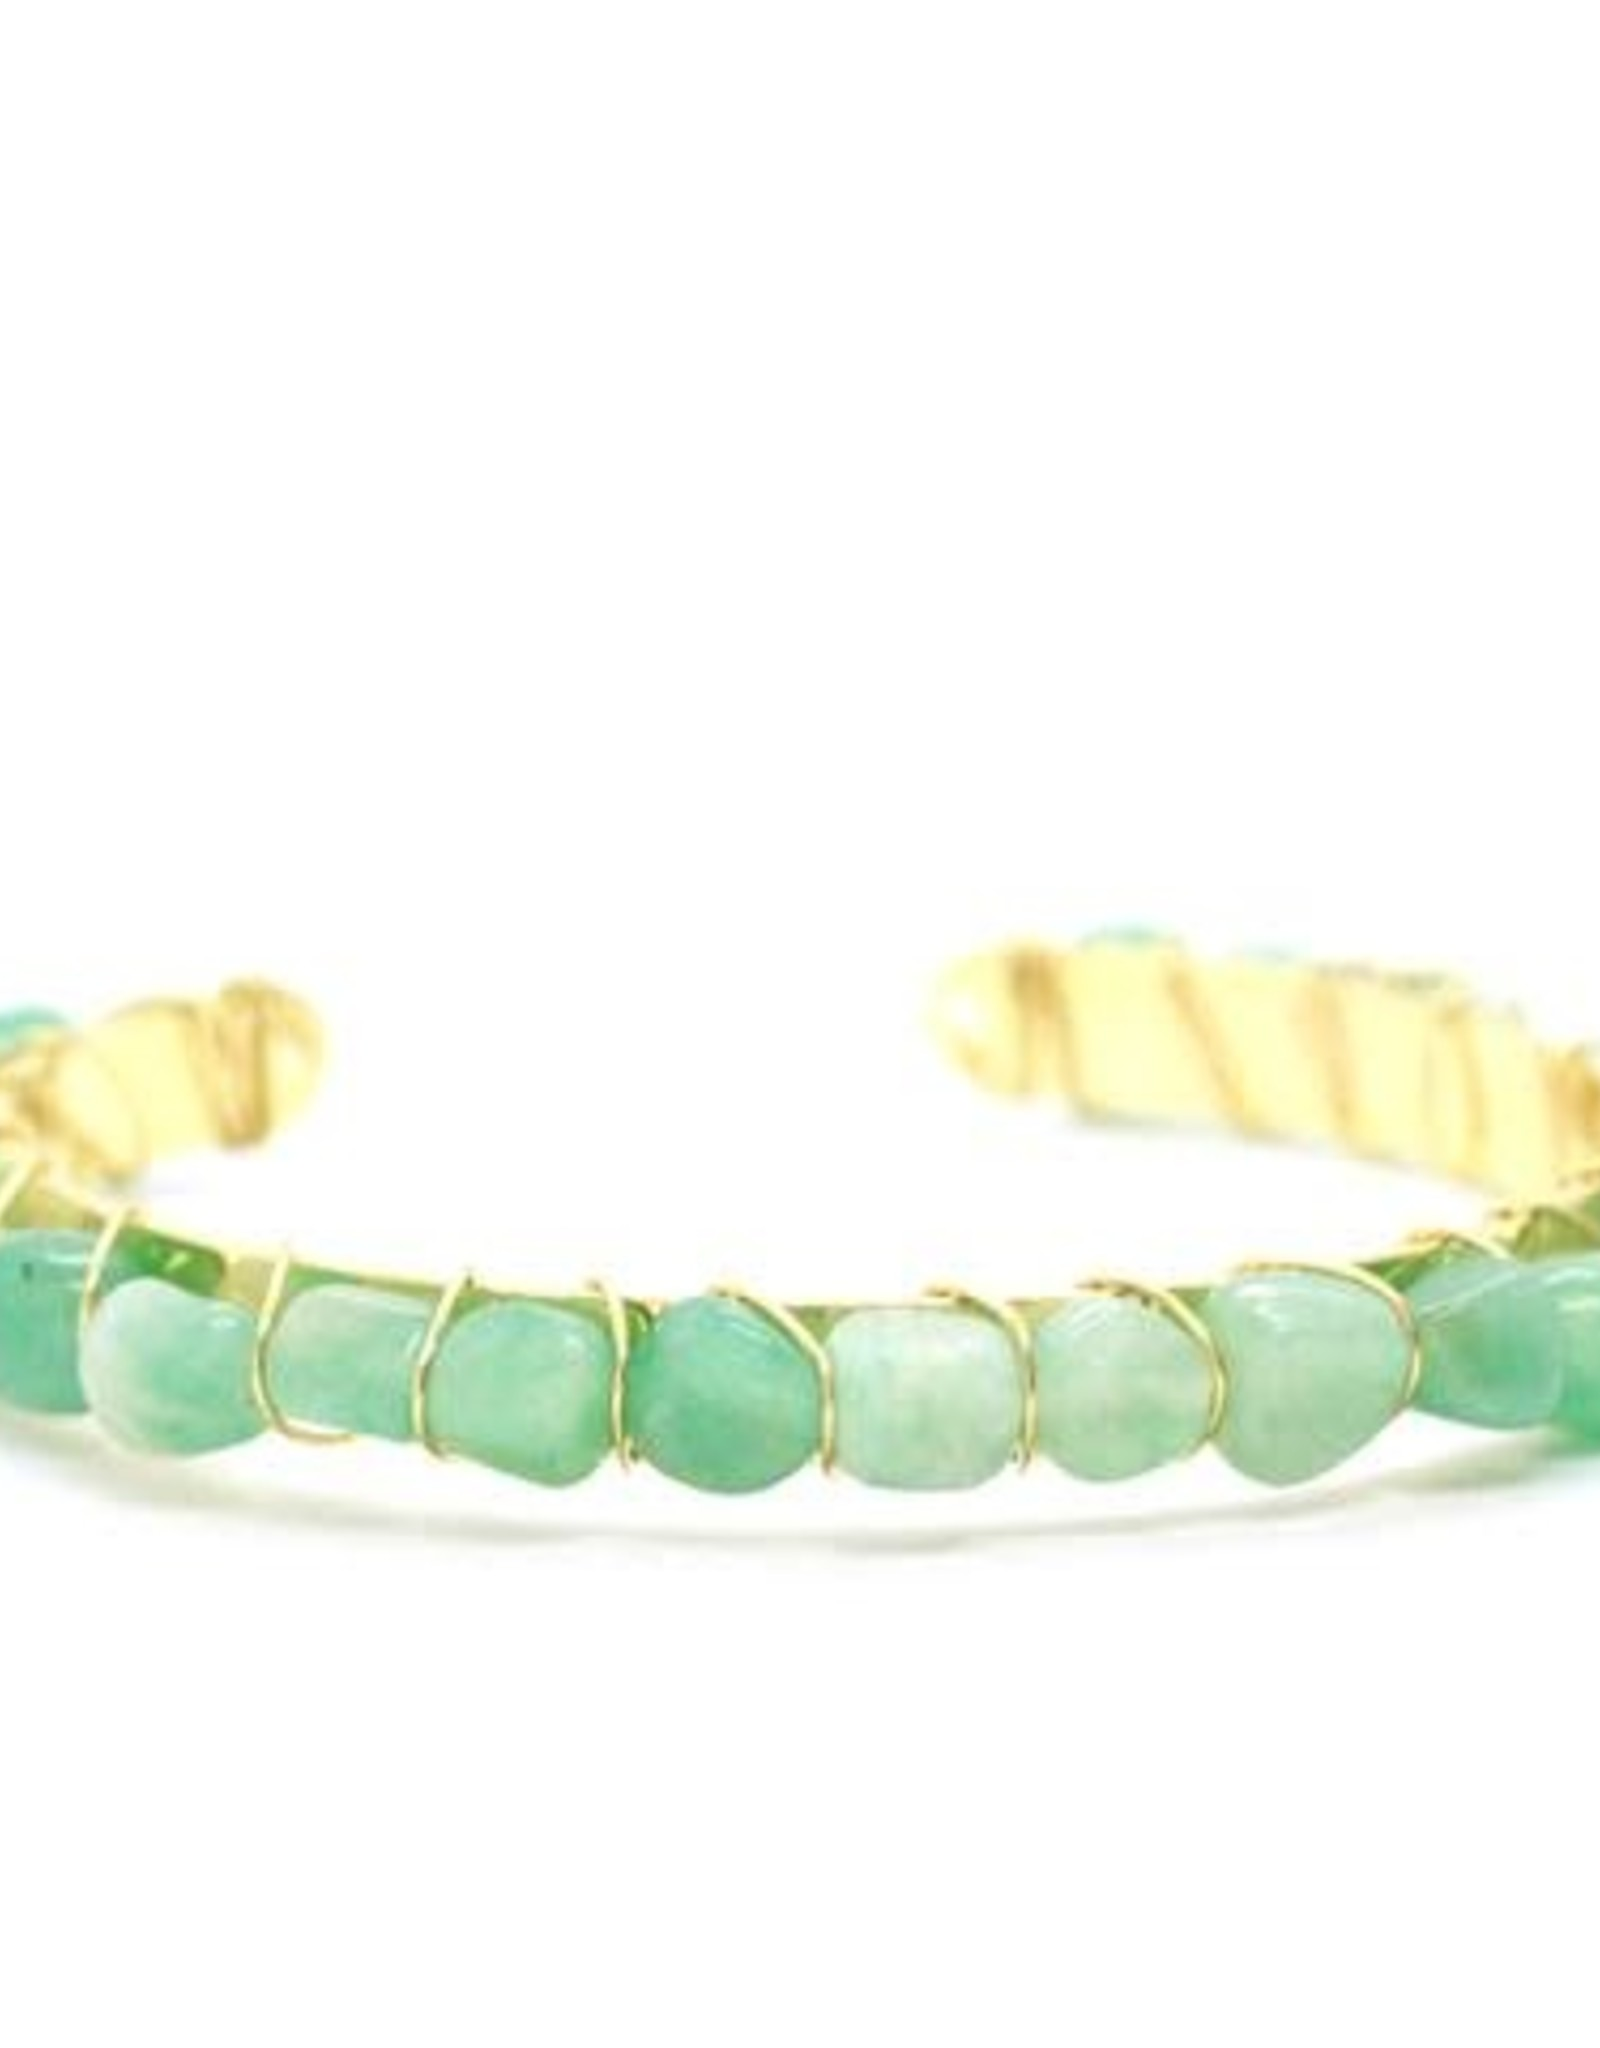 Salty Cali Green Gemstone Bangle